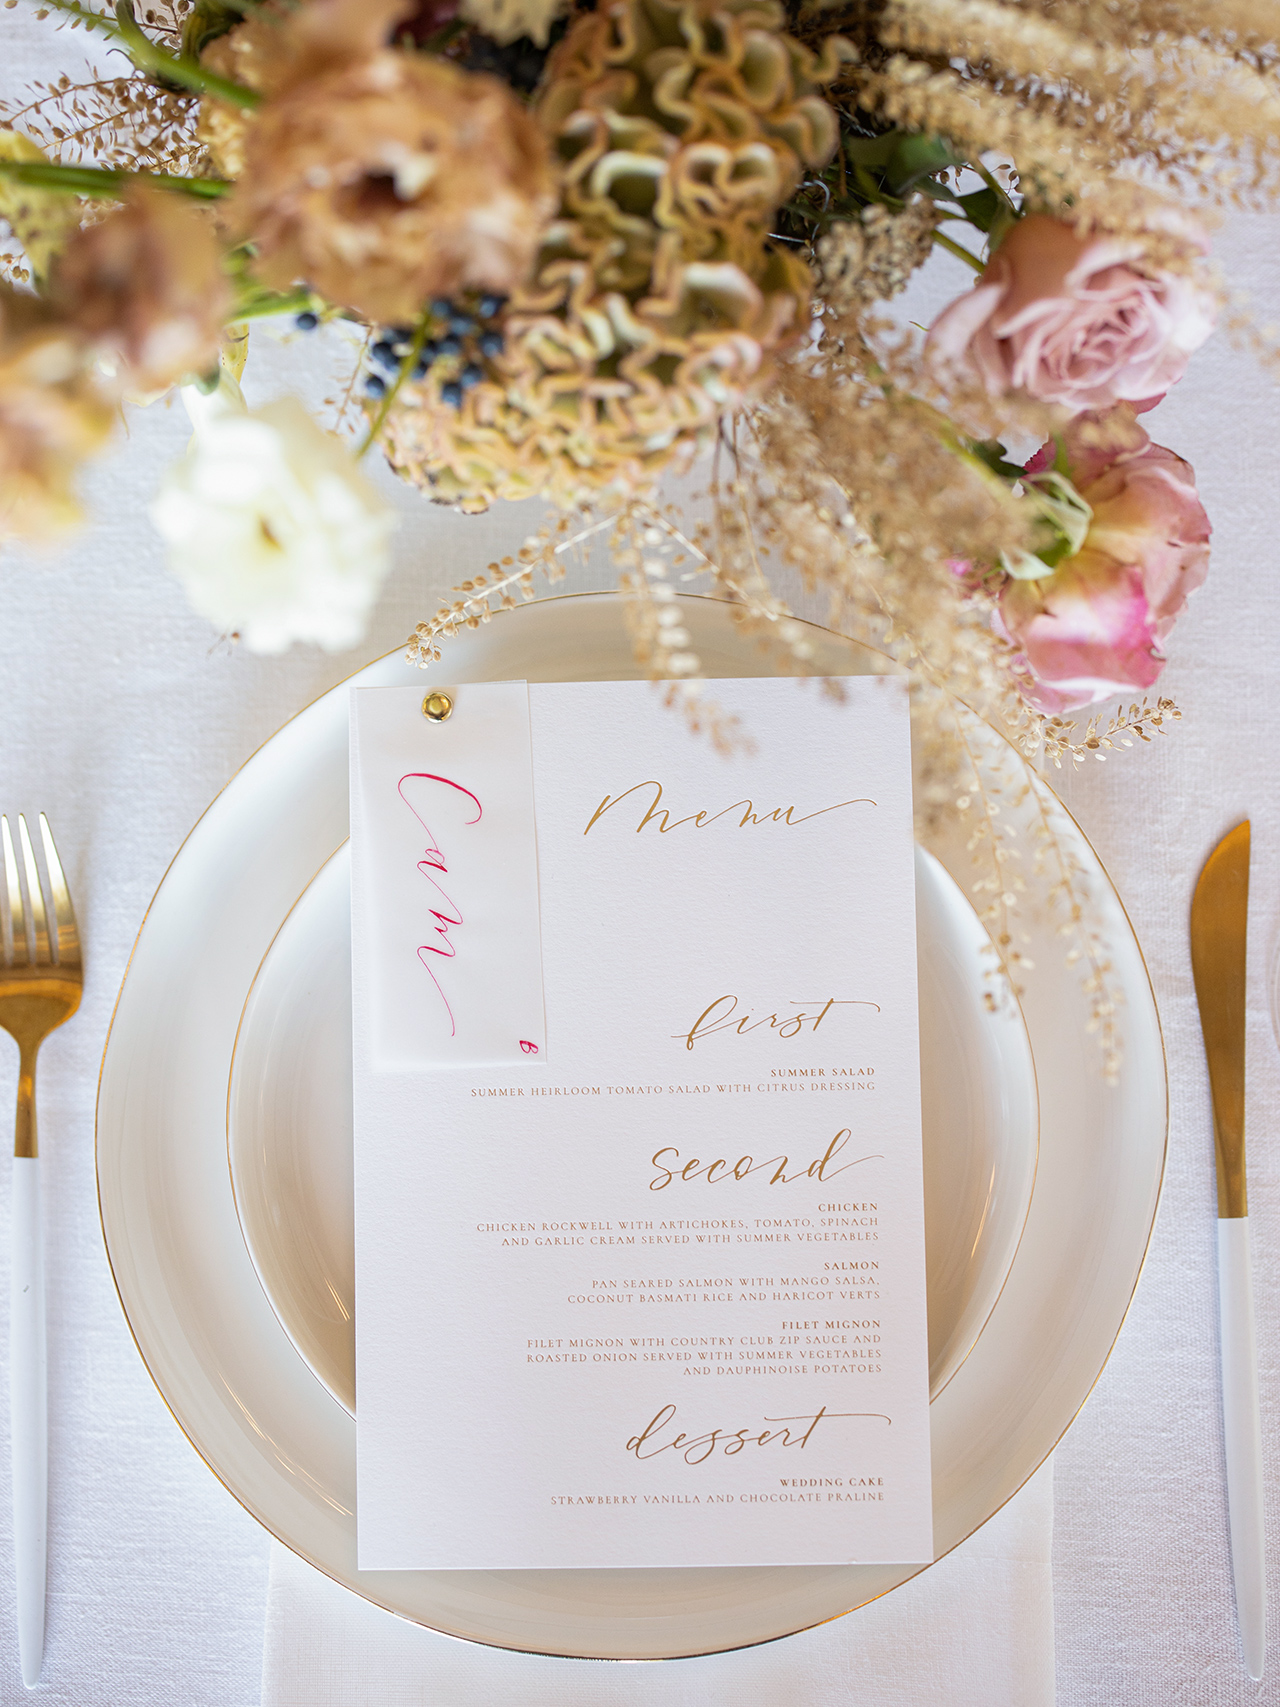 tablesetting wedding menu gold lettering garden floral arrangement